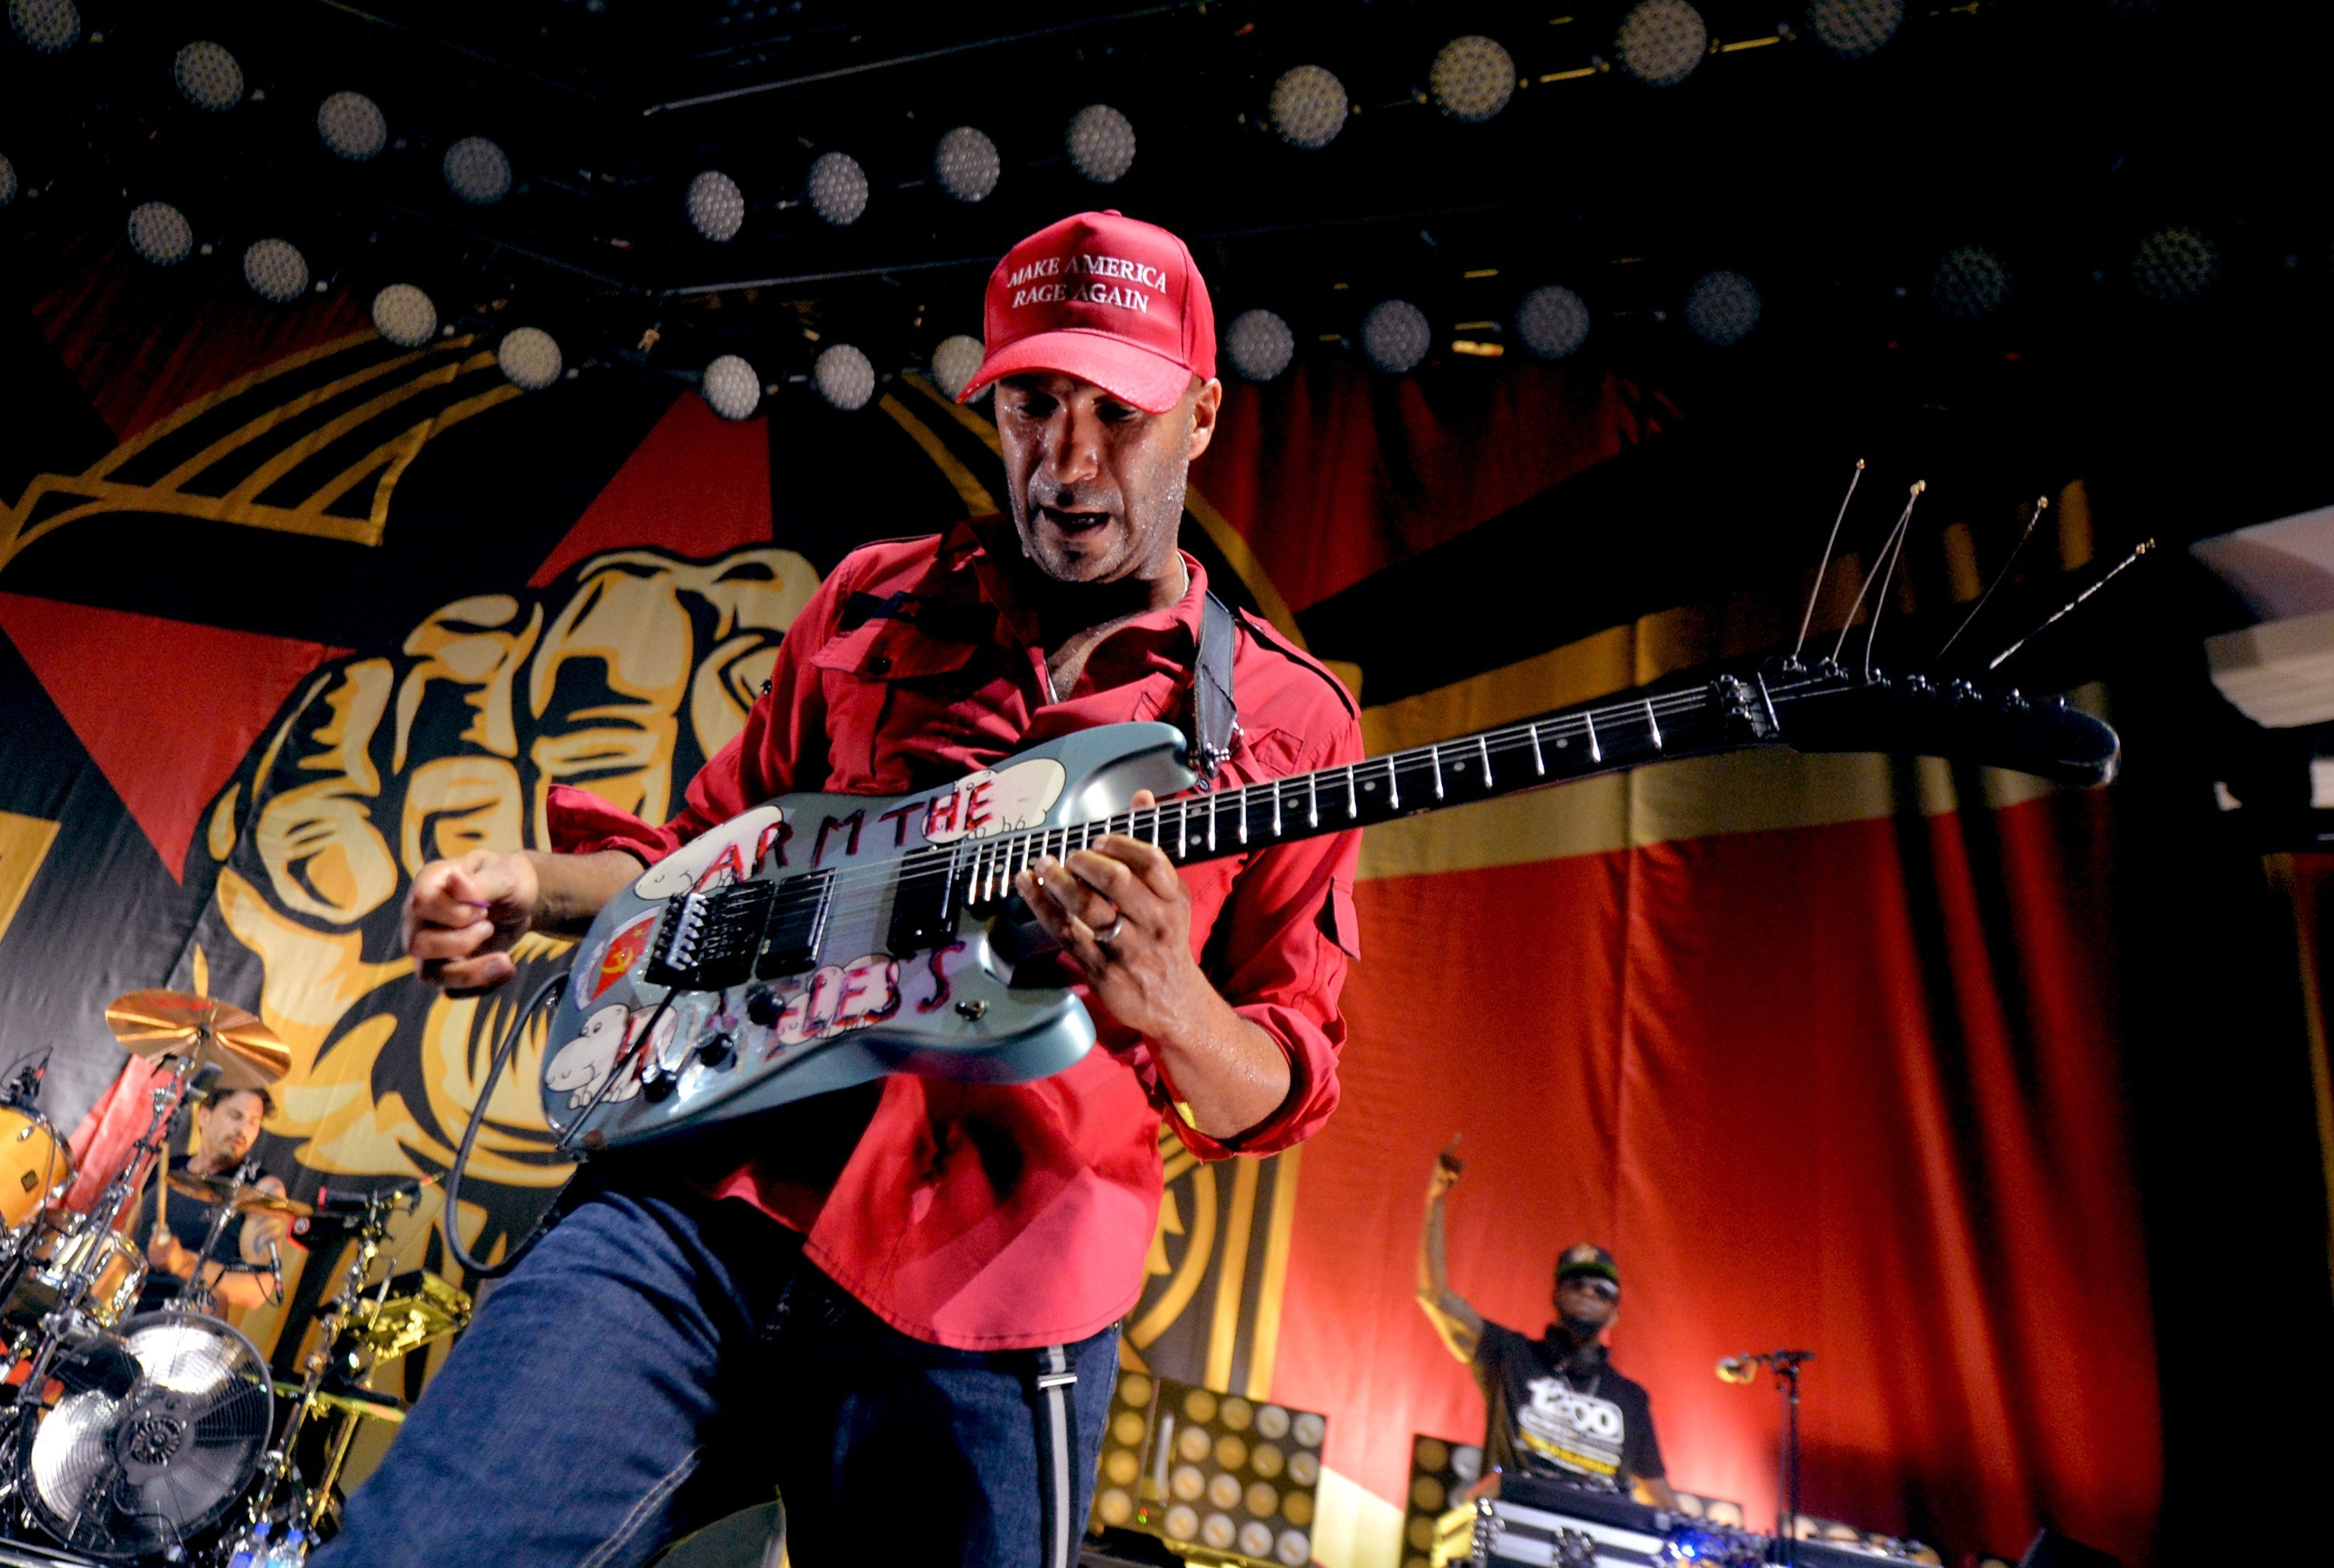 Every Step That I Take: Mira el nuevo videoclip de Tom Morello junto a Portugal, The Man